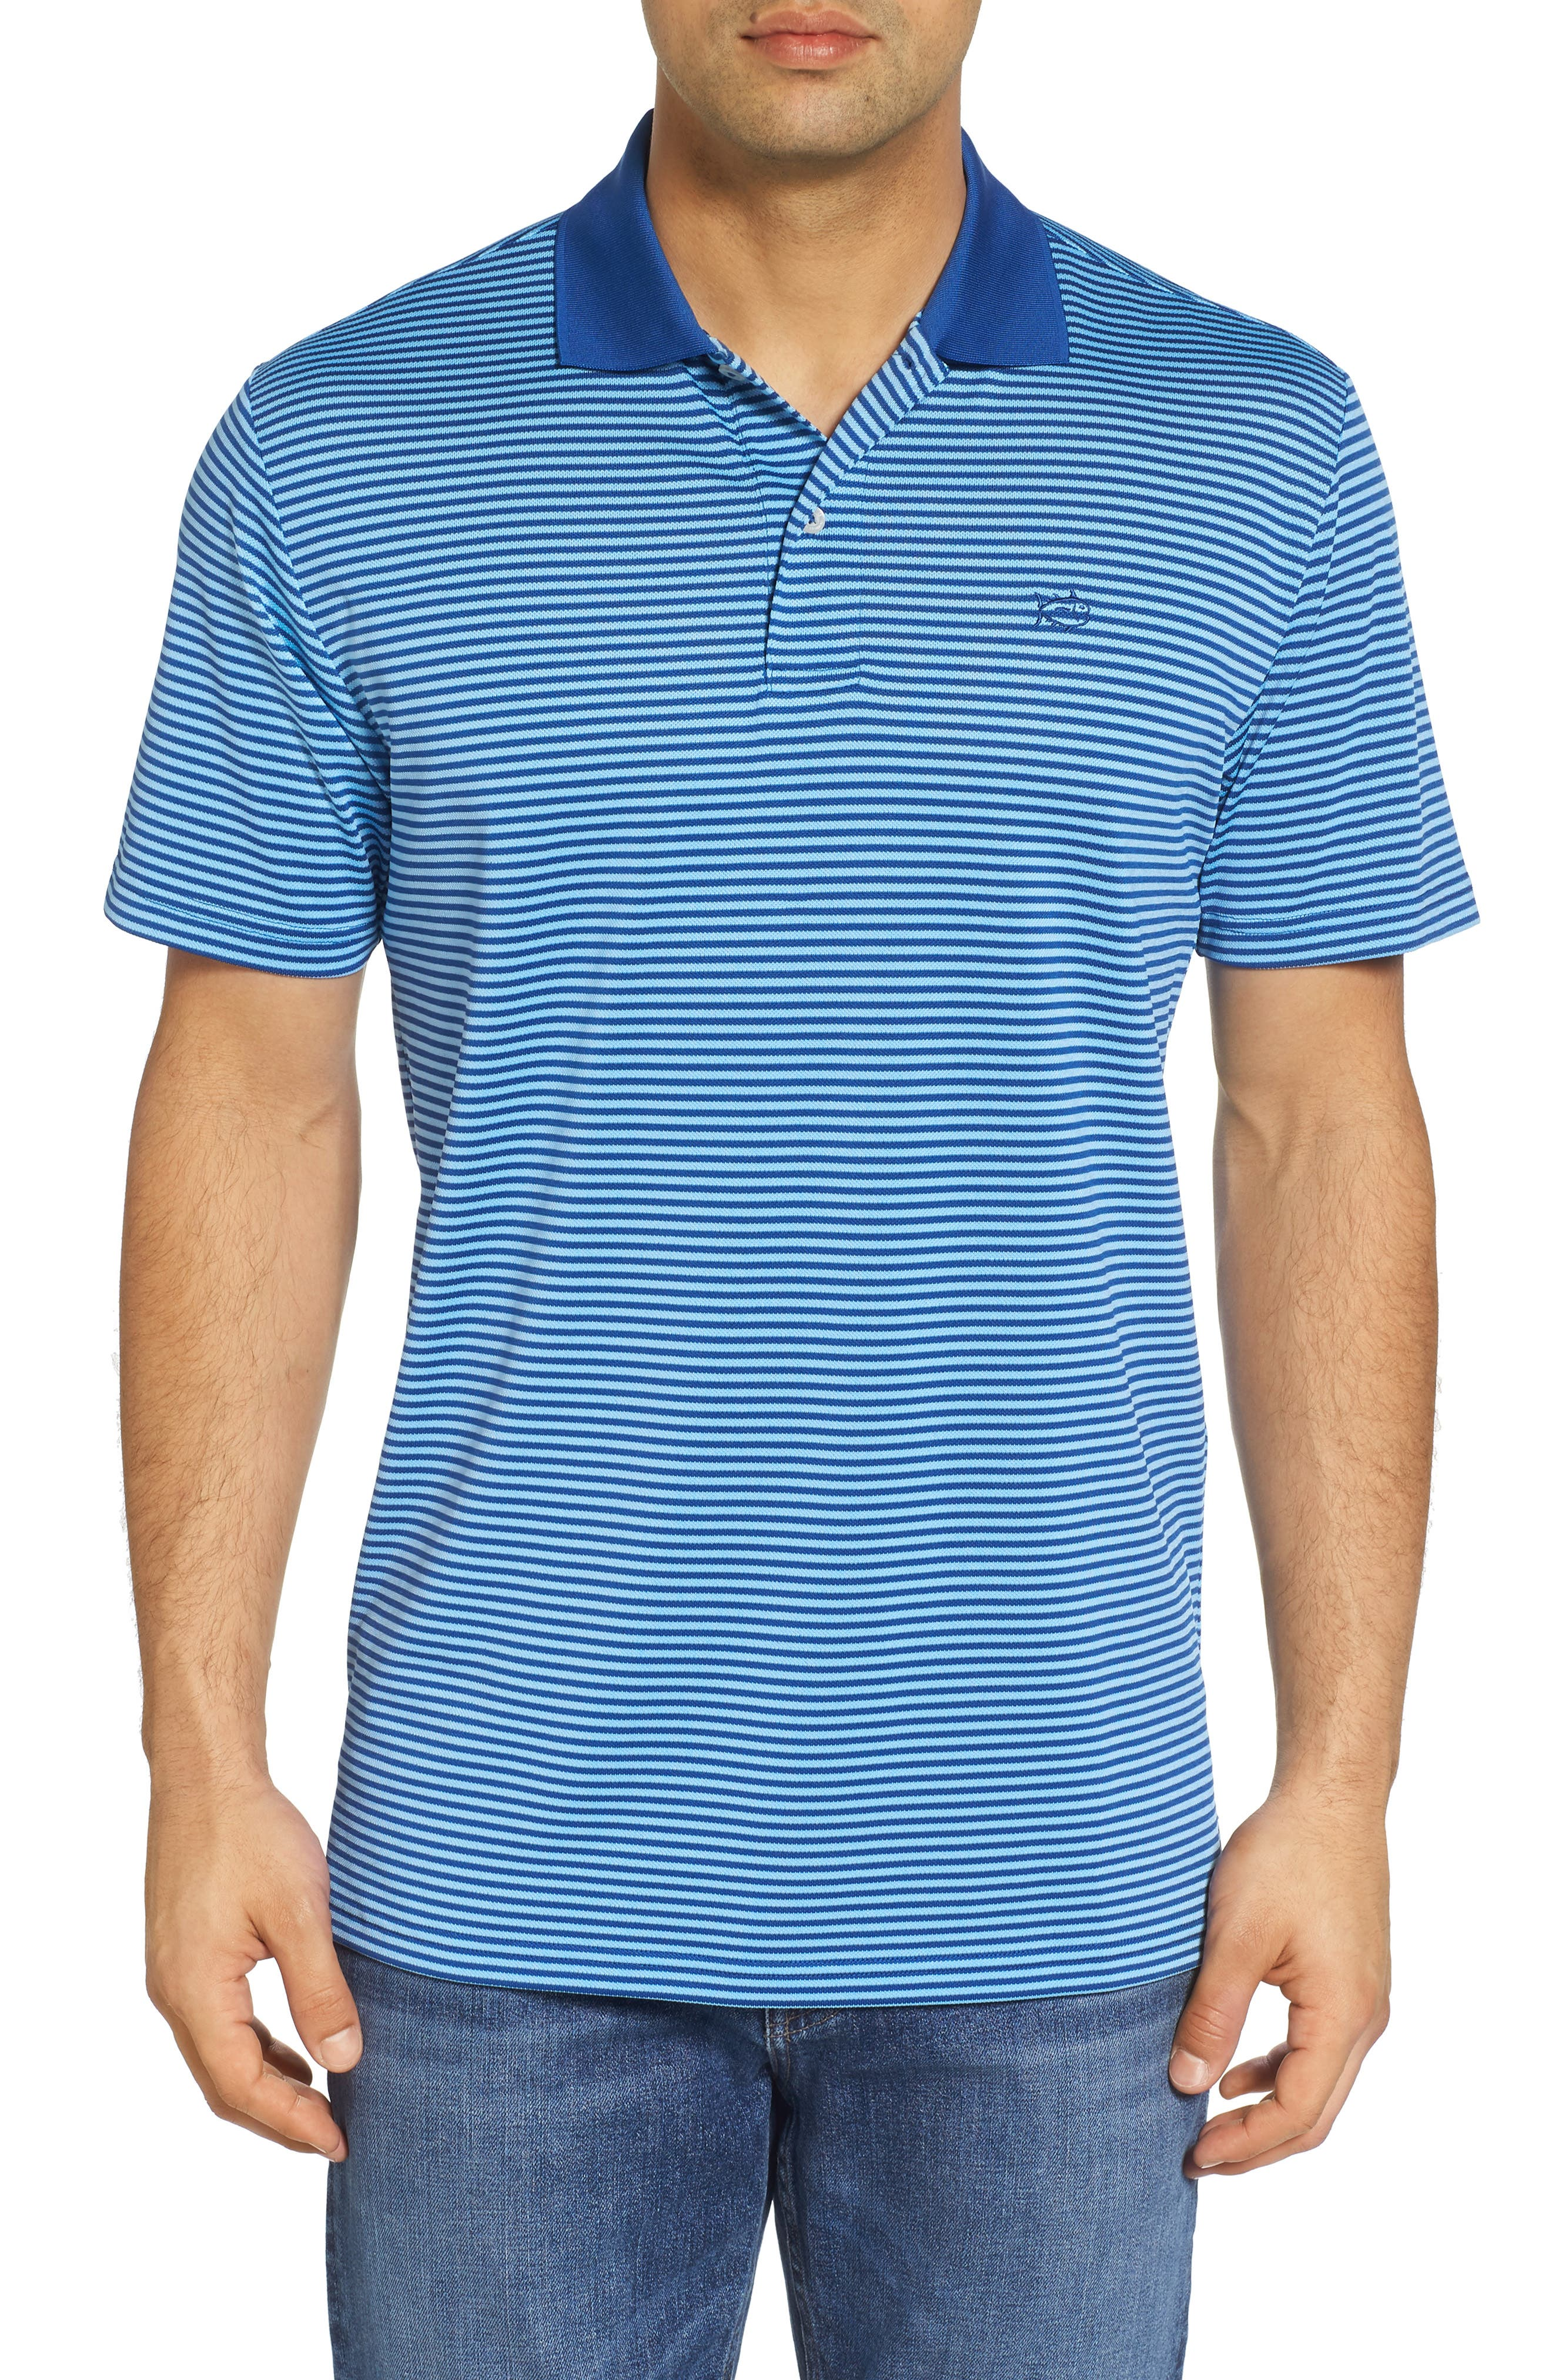 Alternate Image 1 Selected - Southern Tide Regular Fit Stripe Stretch Polo